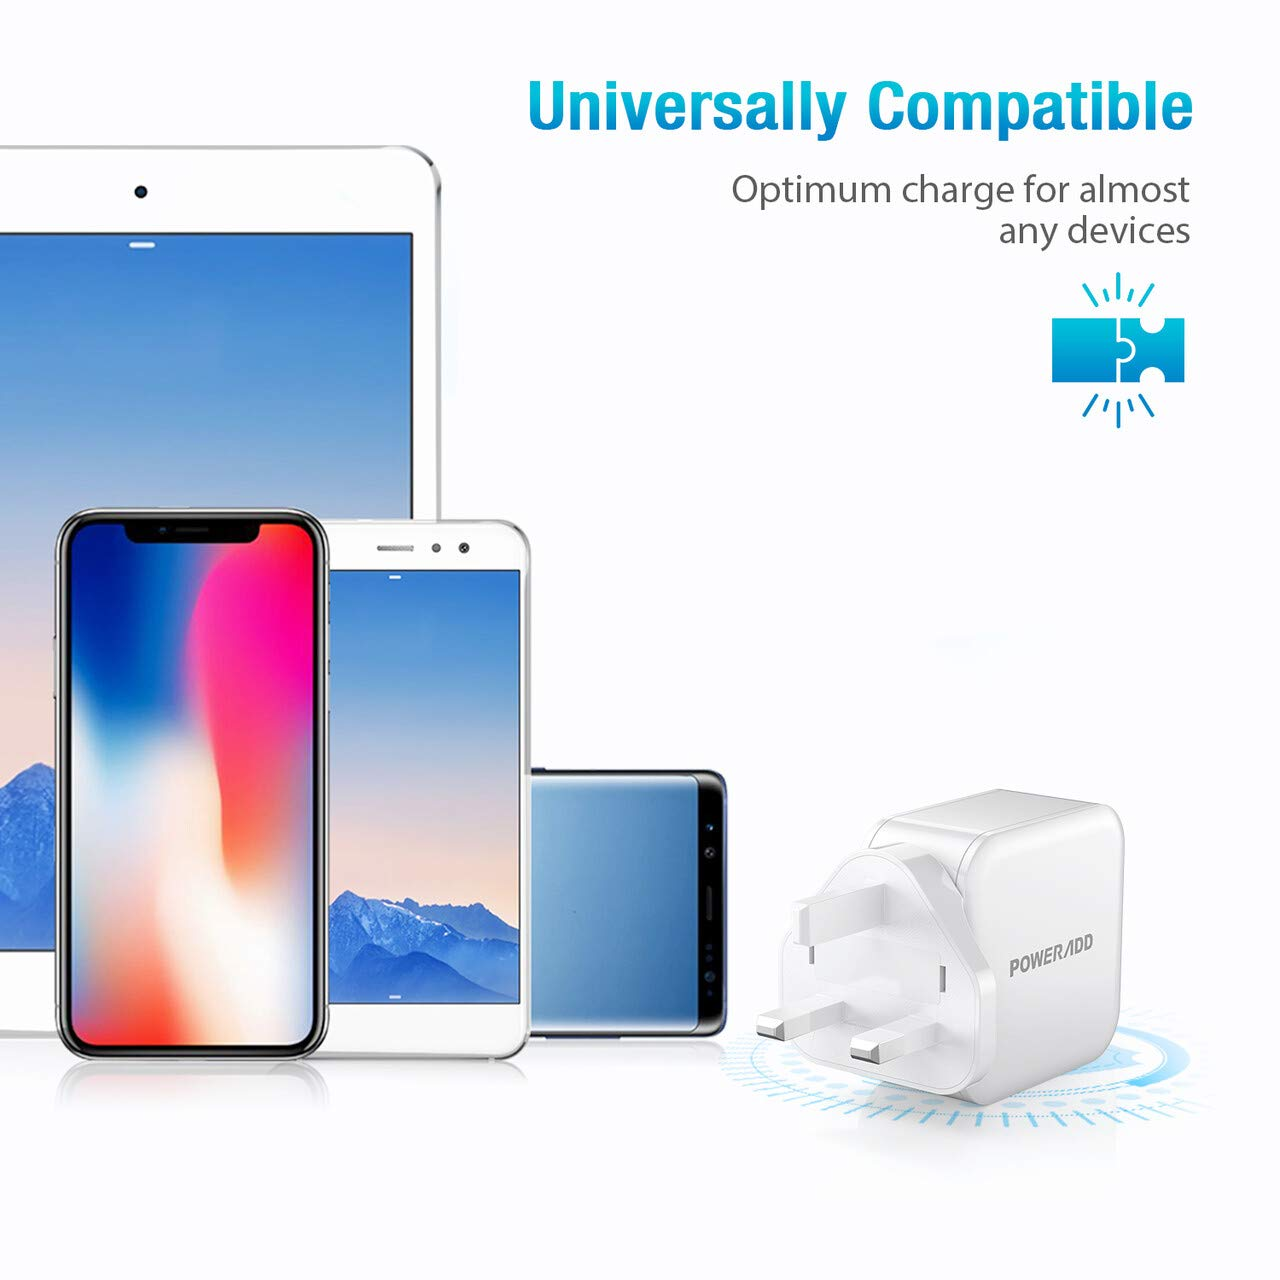 Poweradd USB Plug Charger-24W Dual Port USB Charger 2.4A Output Wall Chargers Power Adapter Compatible with iPhone 11 Pro/XS Max/XR/X/8 Plus, Galaxy, HUAWEI, HTC, Motorola, LG and More-White